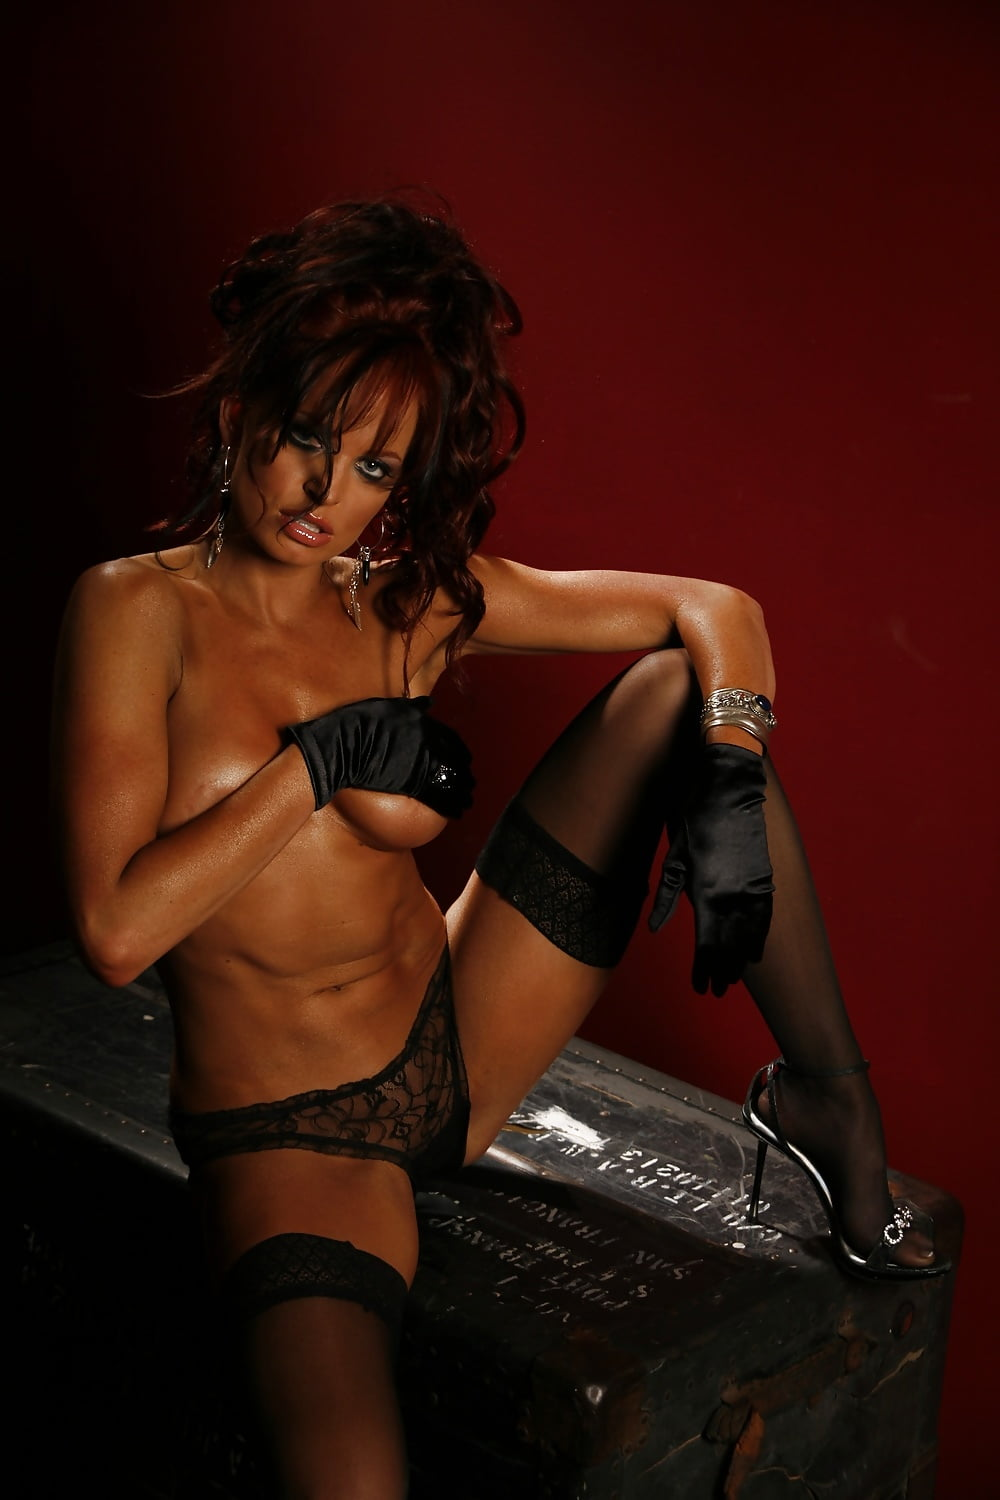 Nude Celebrity Christy Hemme Pictures And Pics